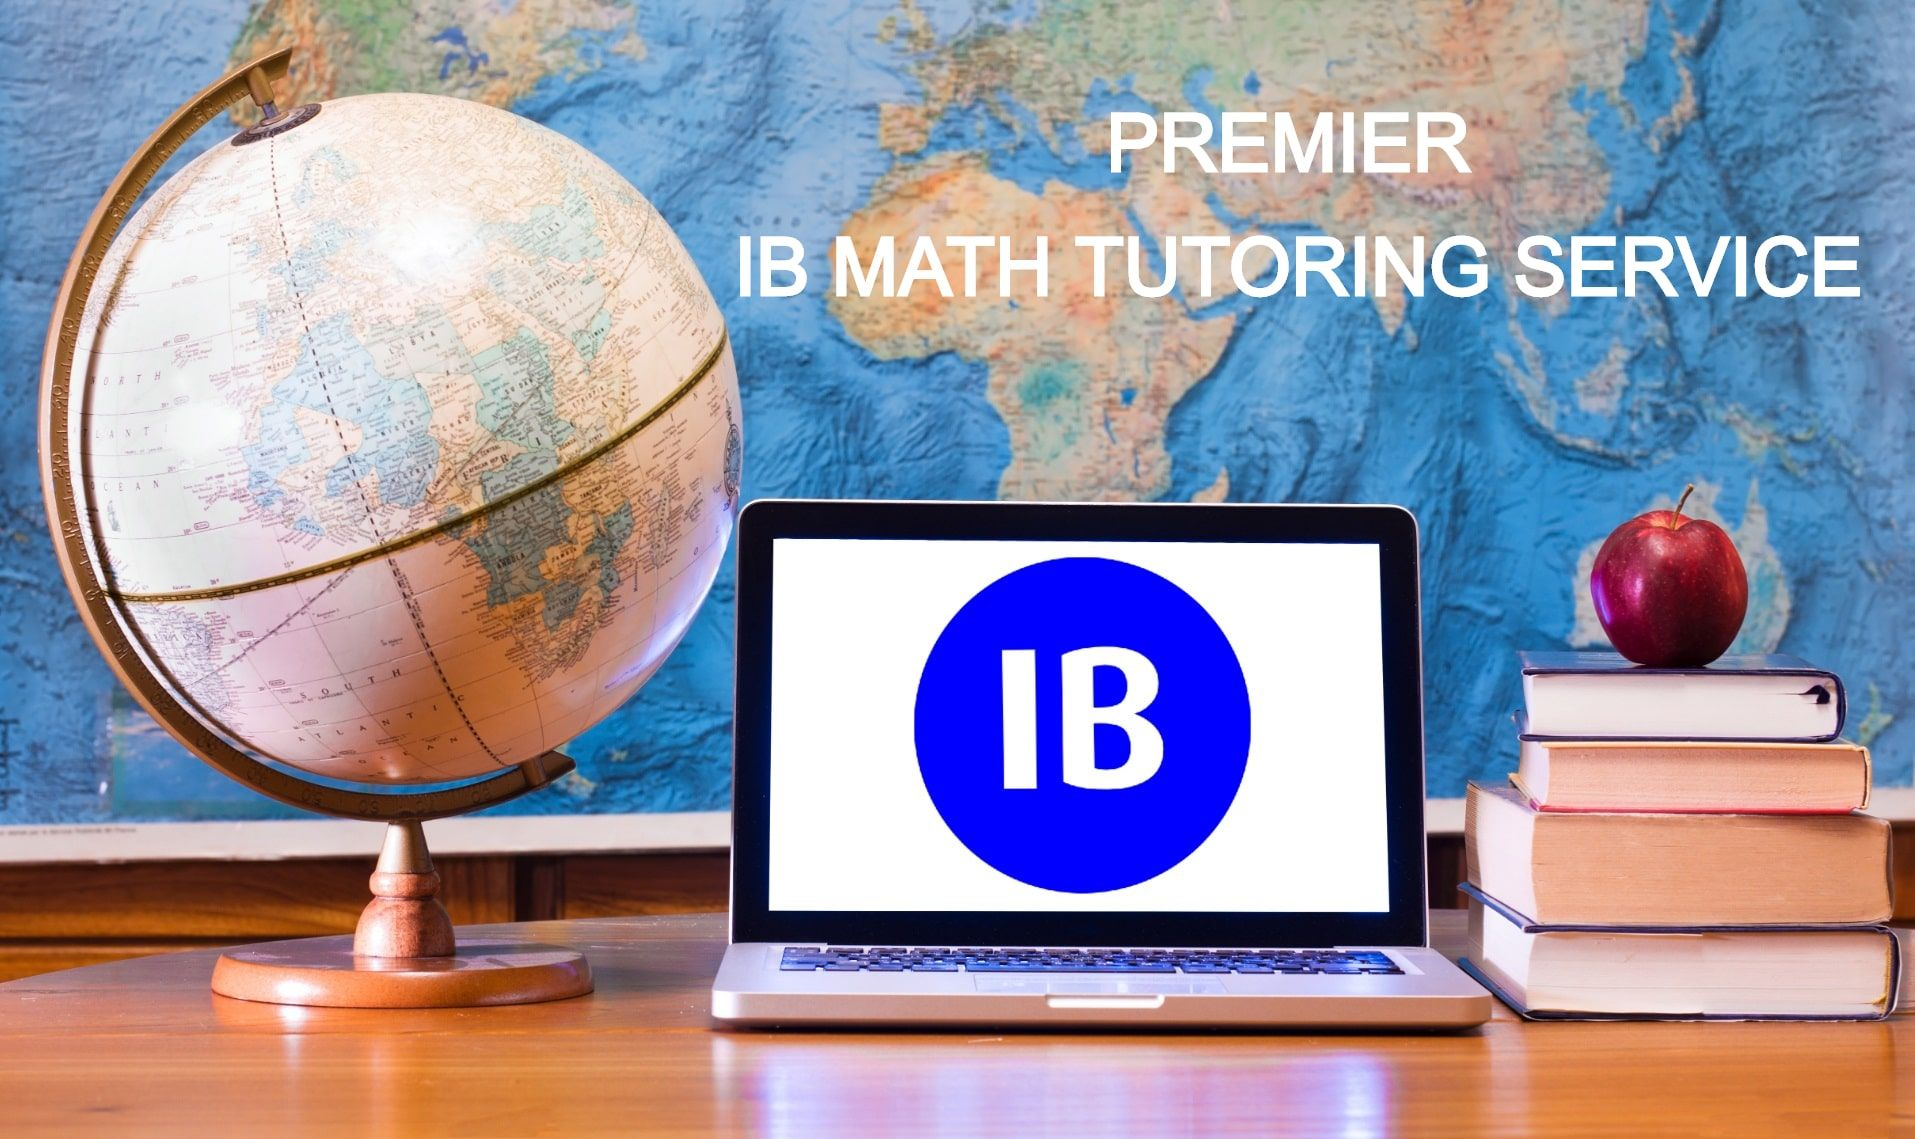 IB MATH TUTORING SERVICE IN VANCOUVER WITH HACK YOUR COURSE TUTORING